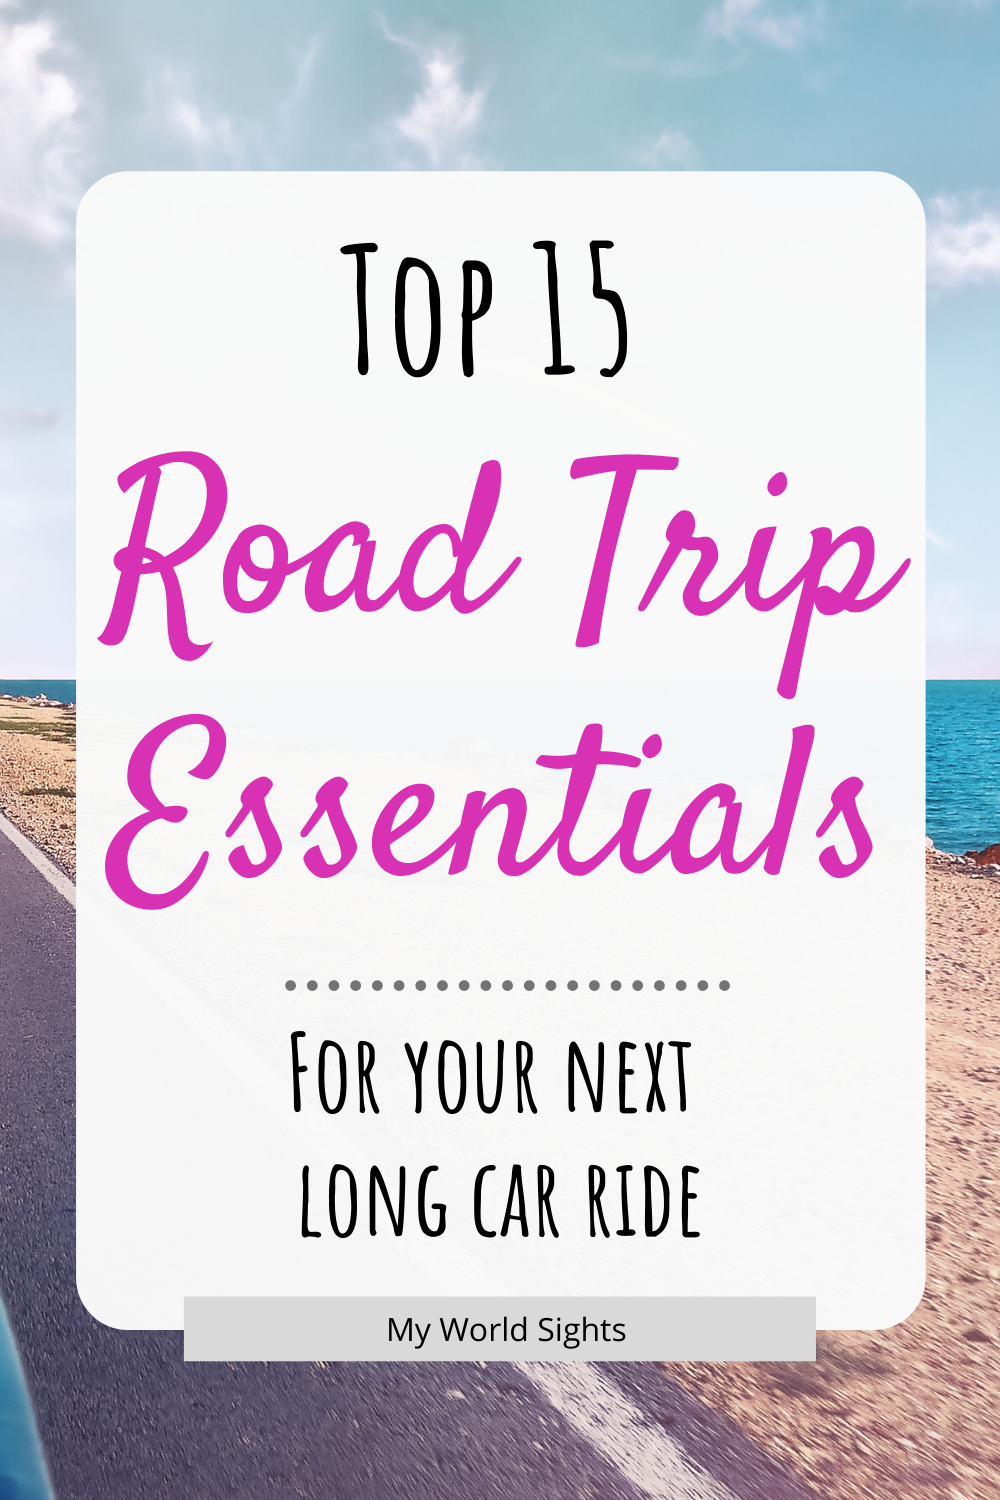 The top road trip essentials for your next long car ride! Road trip snacks, ideas for kids, and packing tips! Road trip hacks, things to do, and packing checklist! Long car ride games and snacks, and activities for kids!  #roadtripaesthetic #roadtripusa #roadtrip #carride #carrideessentials